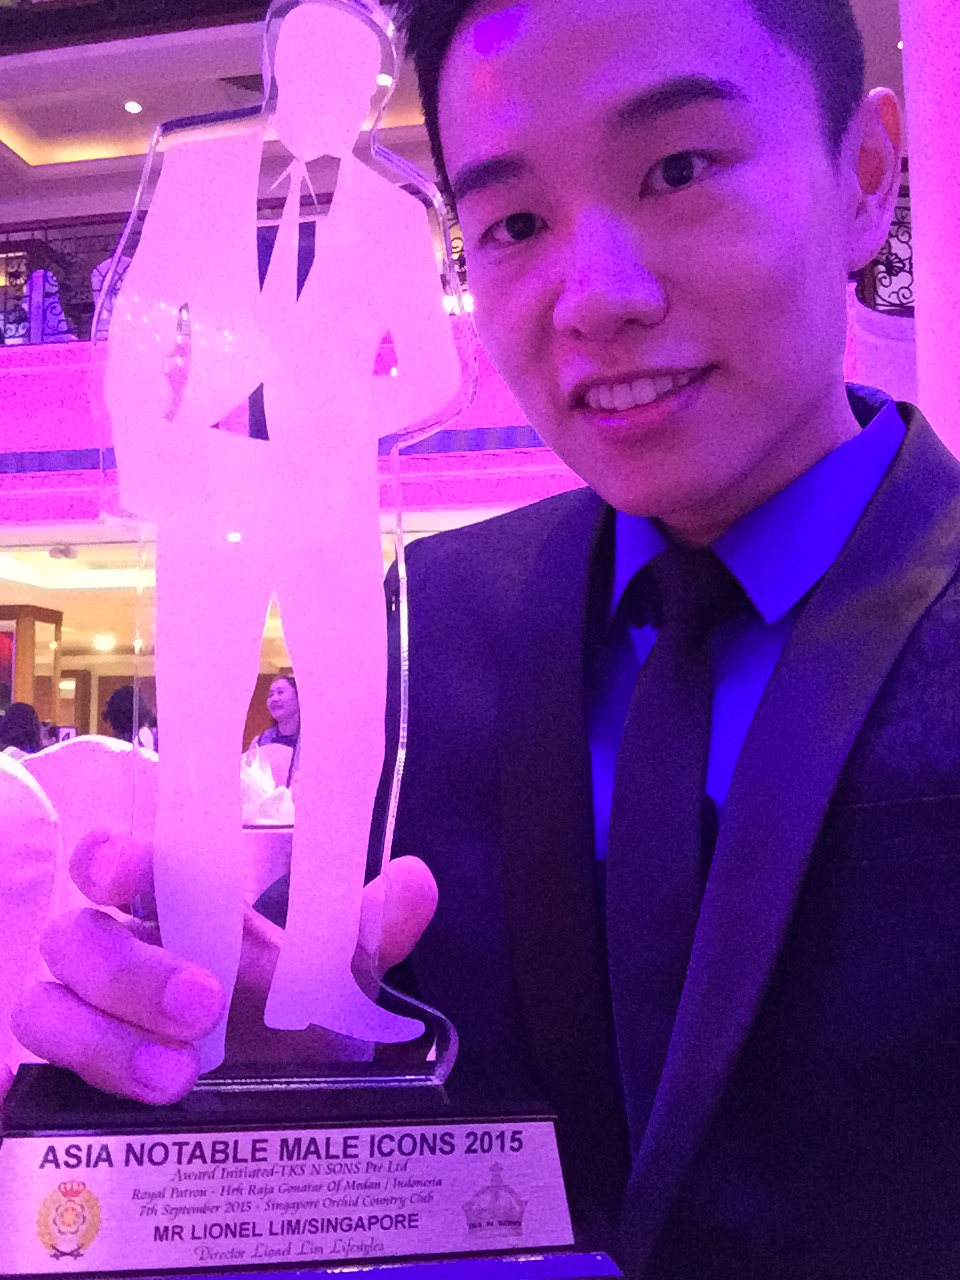 Lionel Lim Receives Asia Notable Male Icon 2015 Award